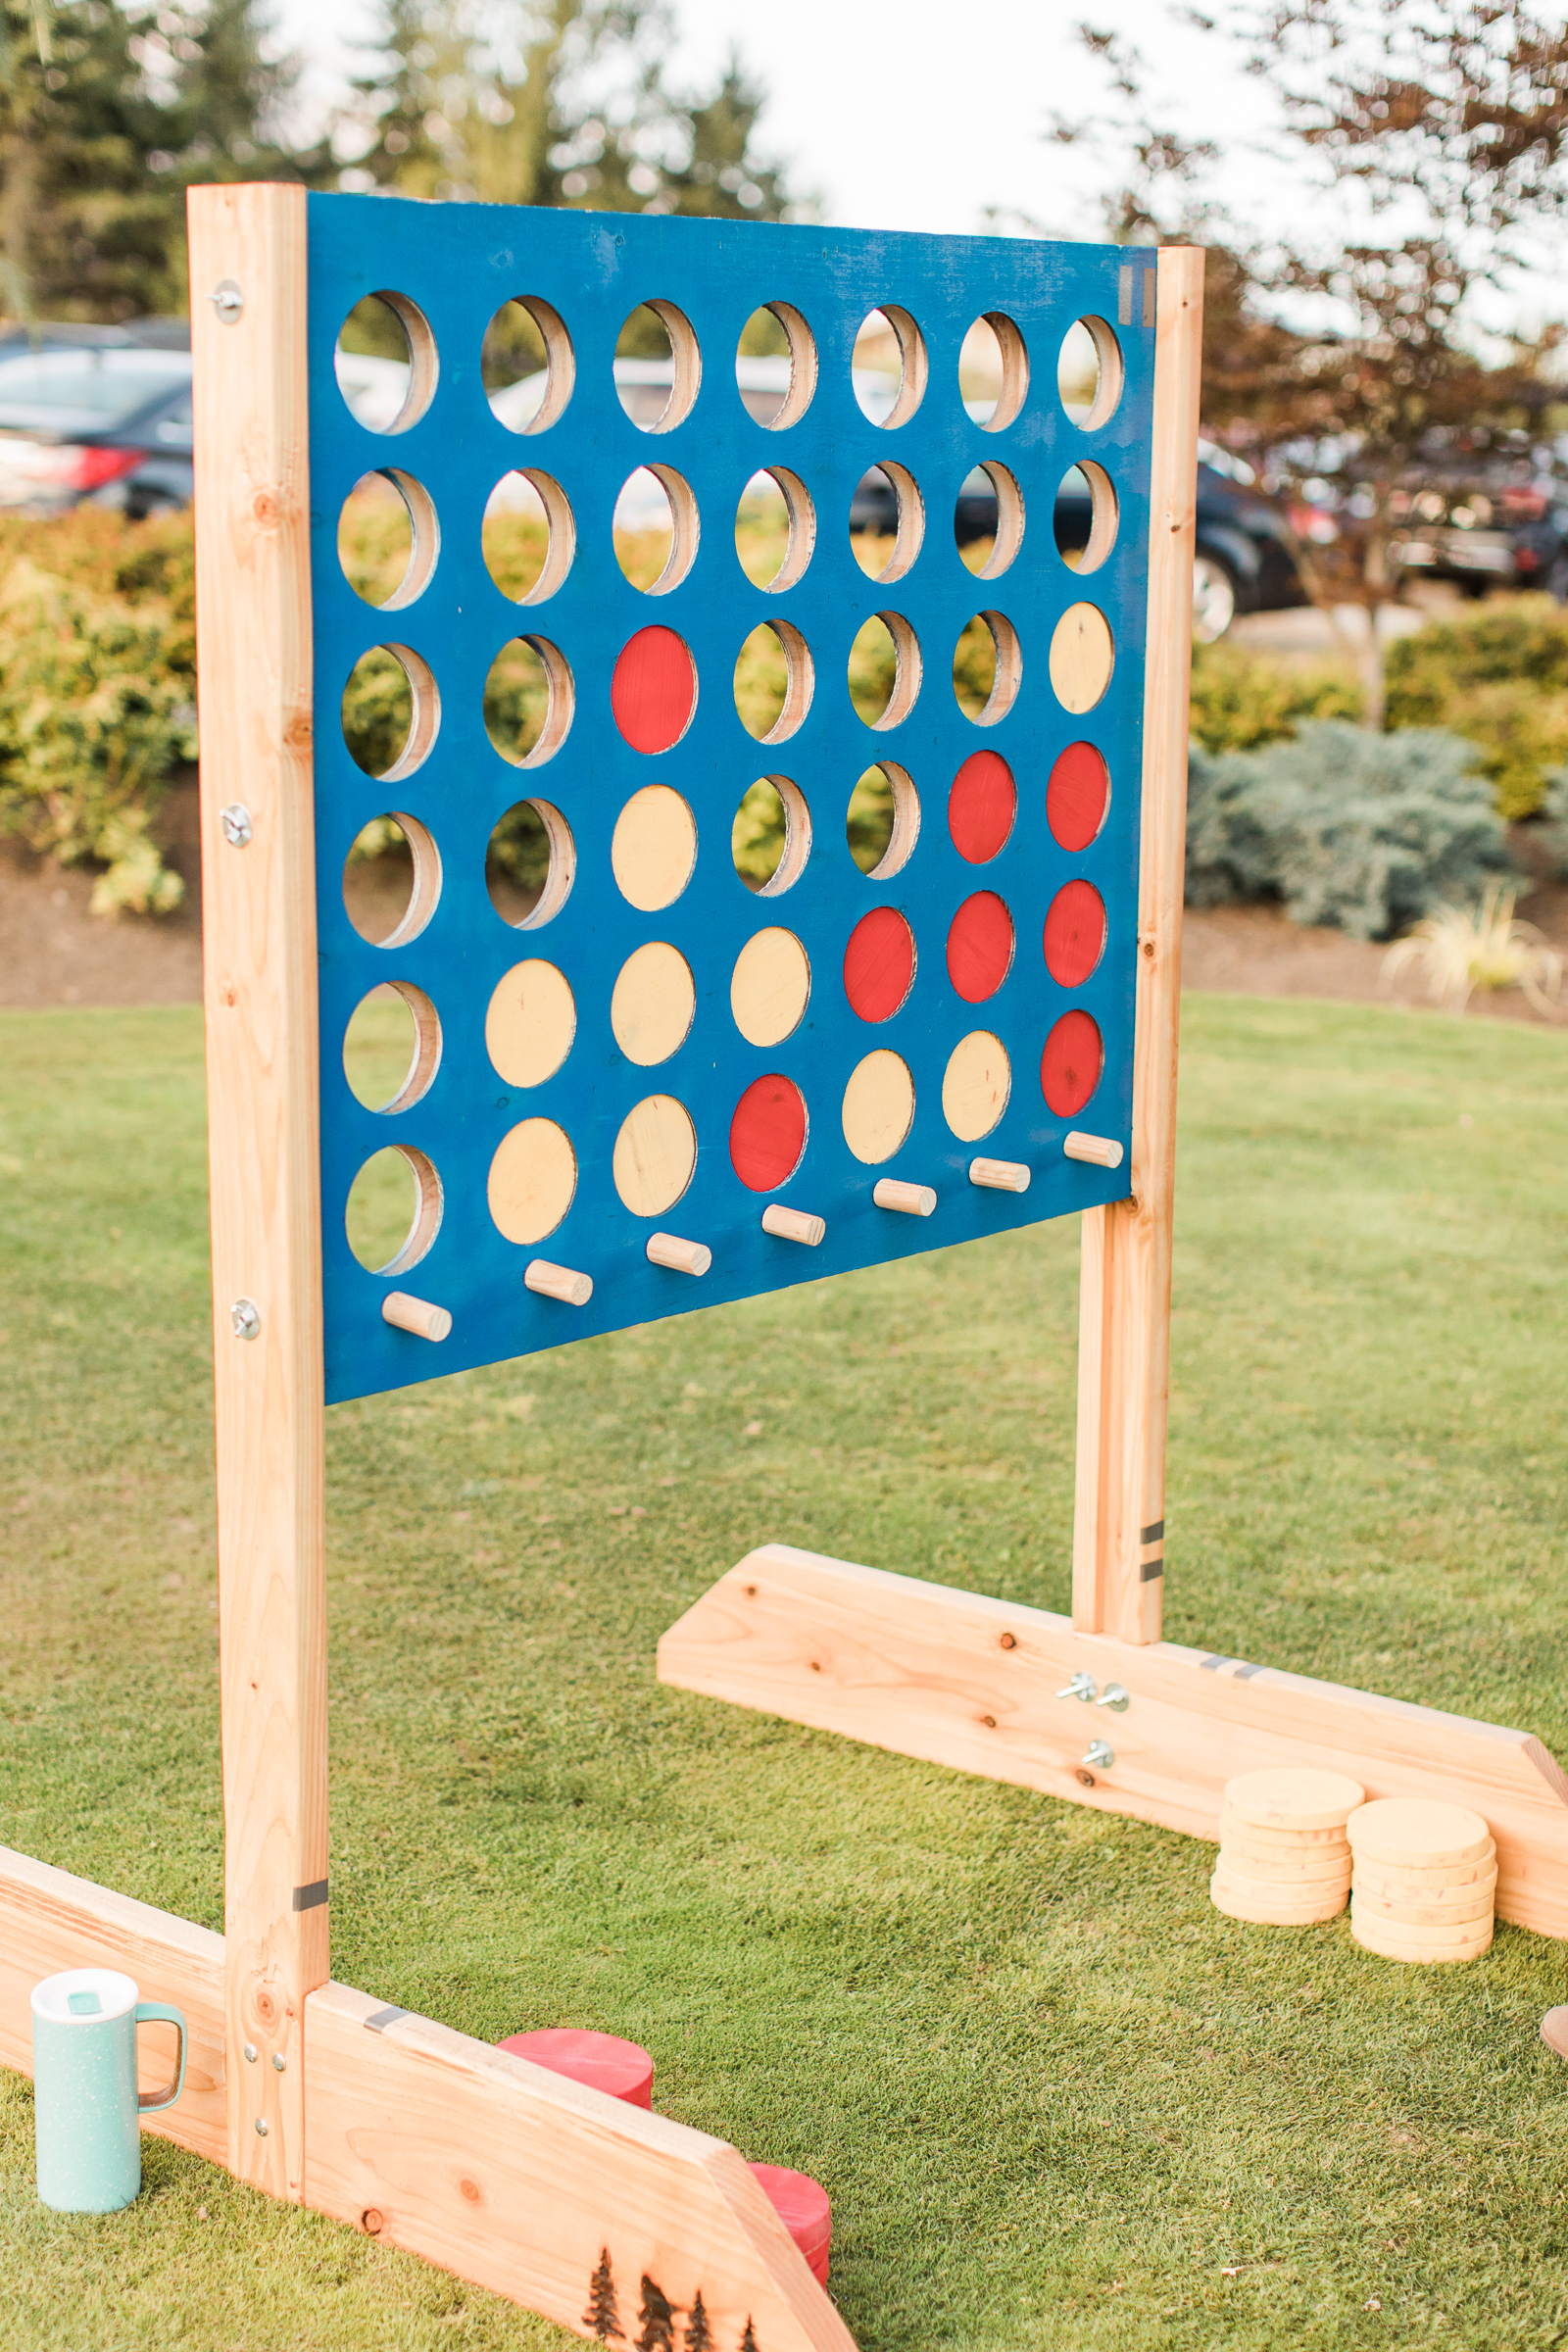 Connect-Four-Yeti-Yard-Game-Rentals.jpg